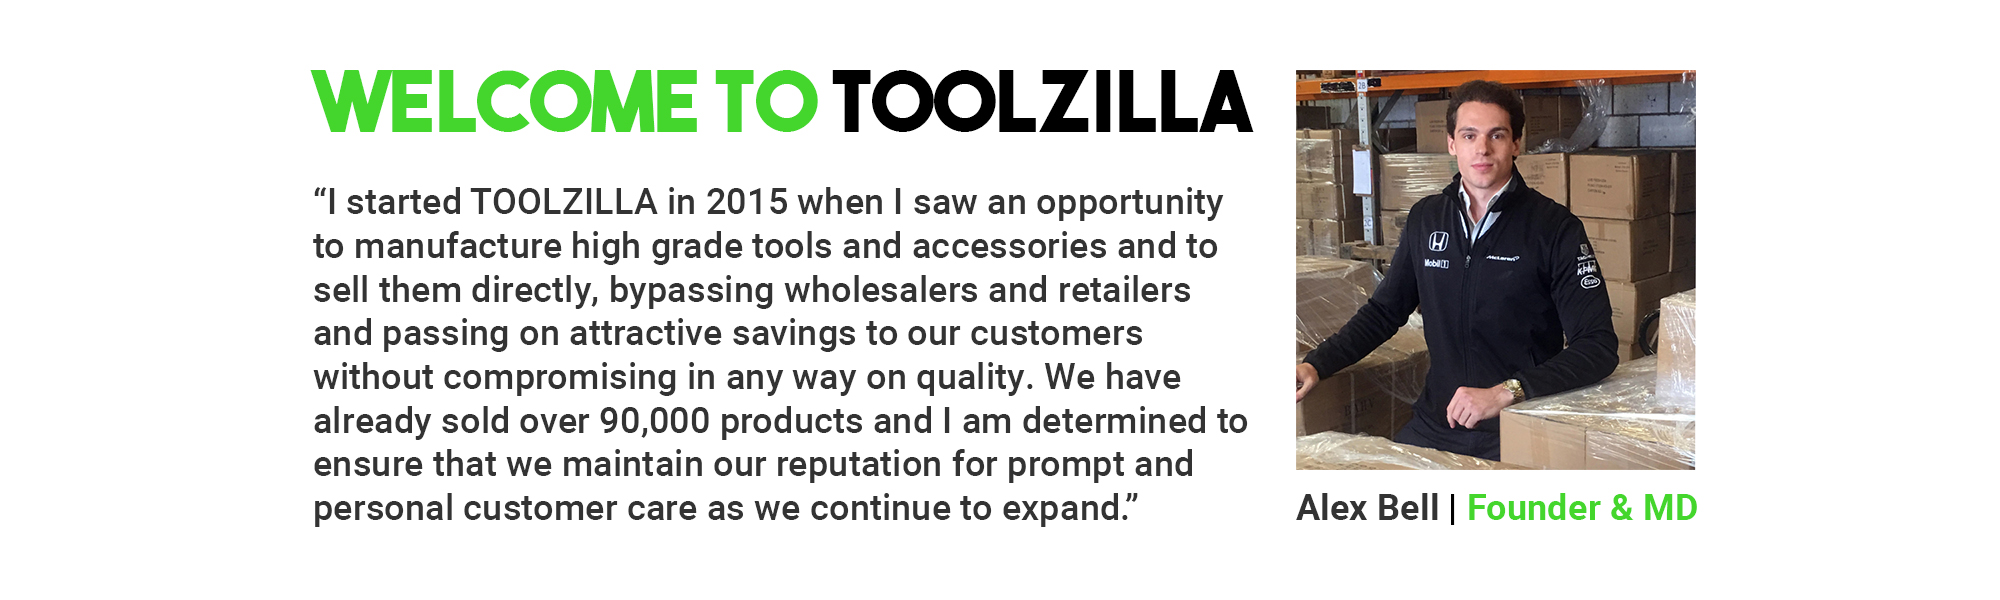 About TOOLZILLA Tools